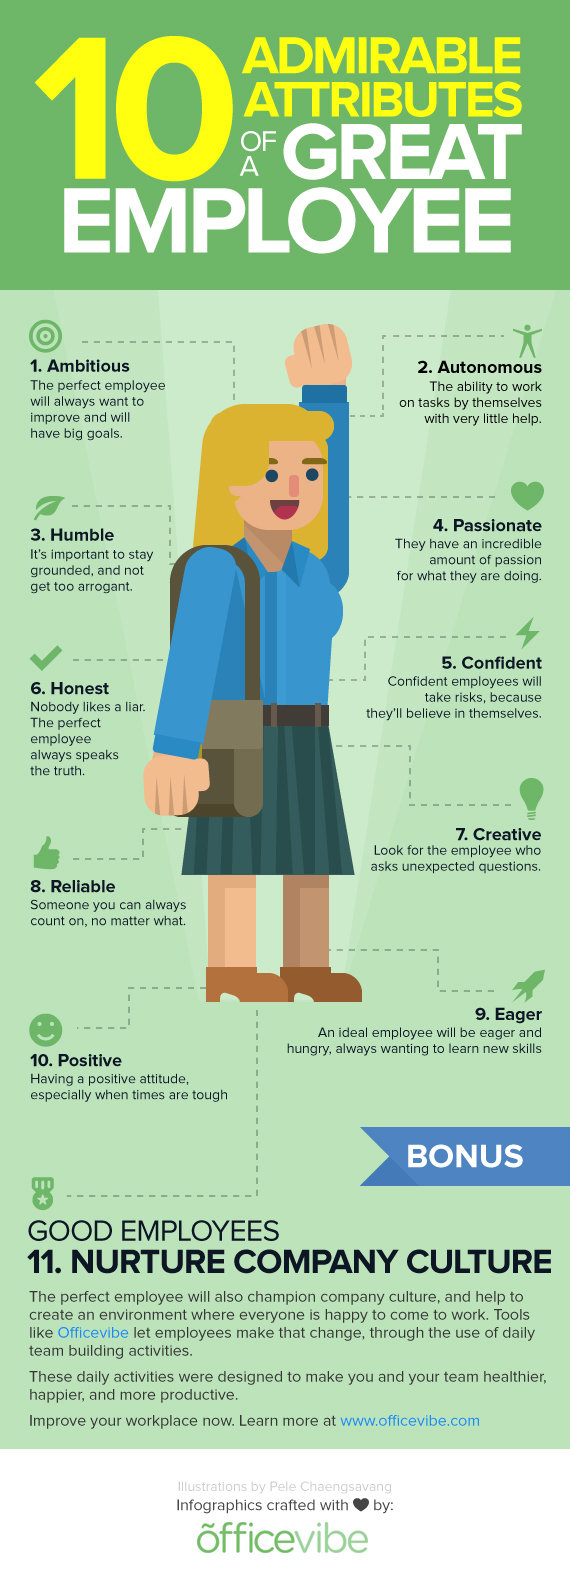 Ten Admirable attributes of a great employee #Infographic